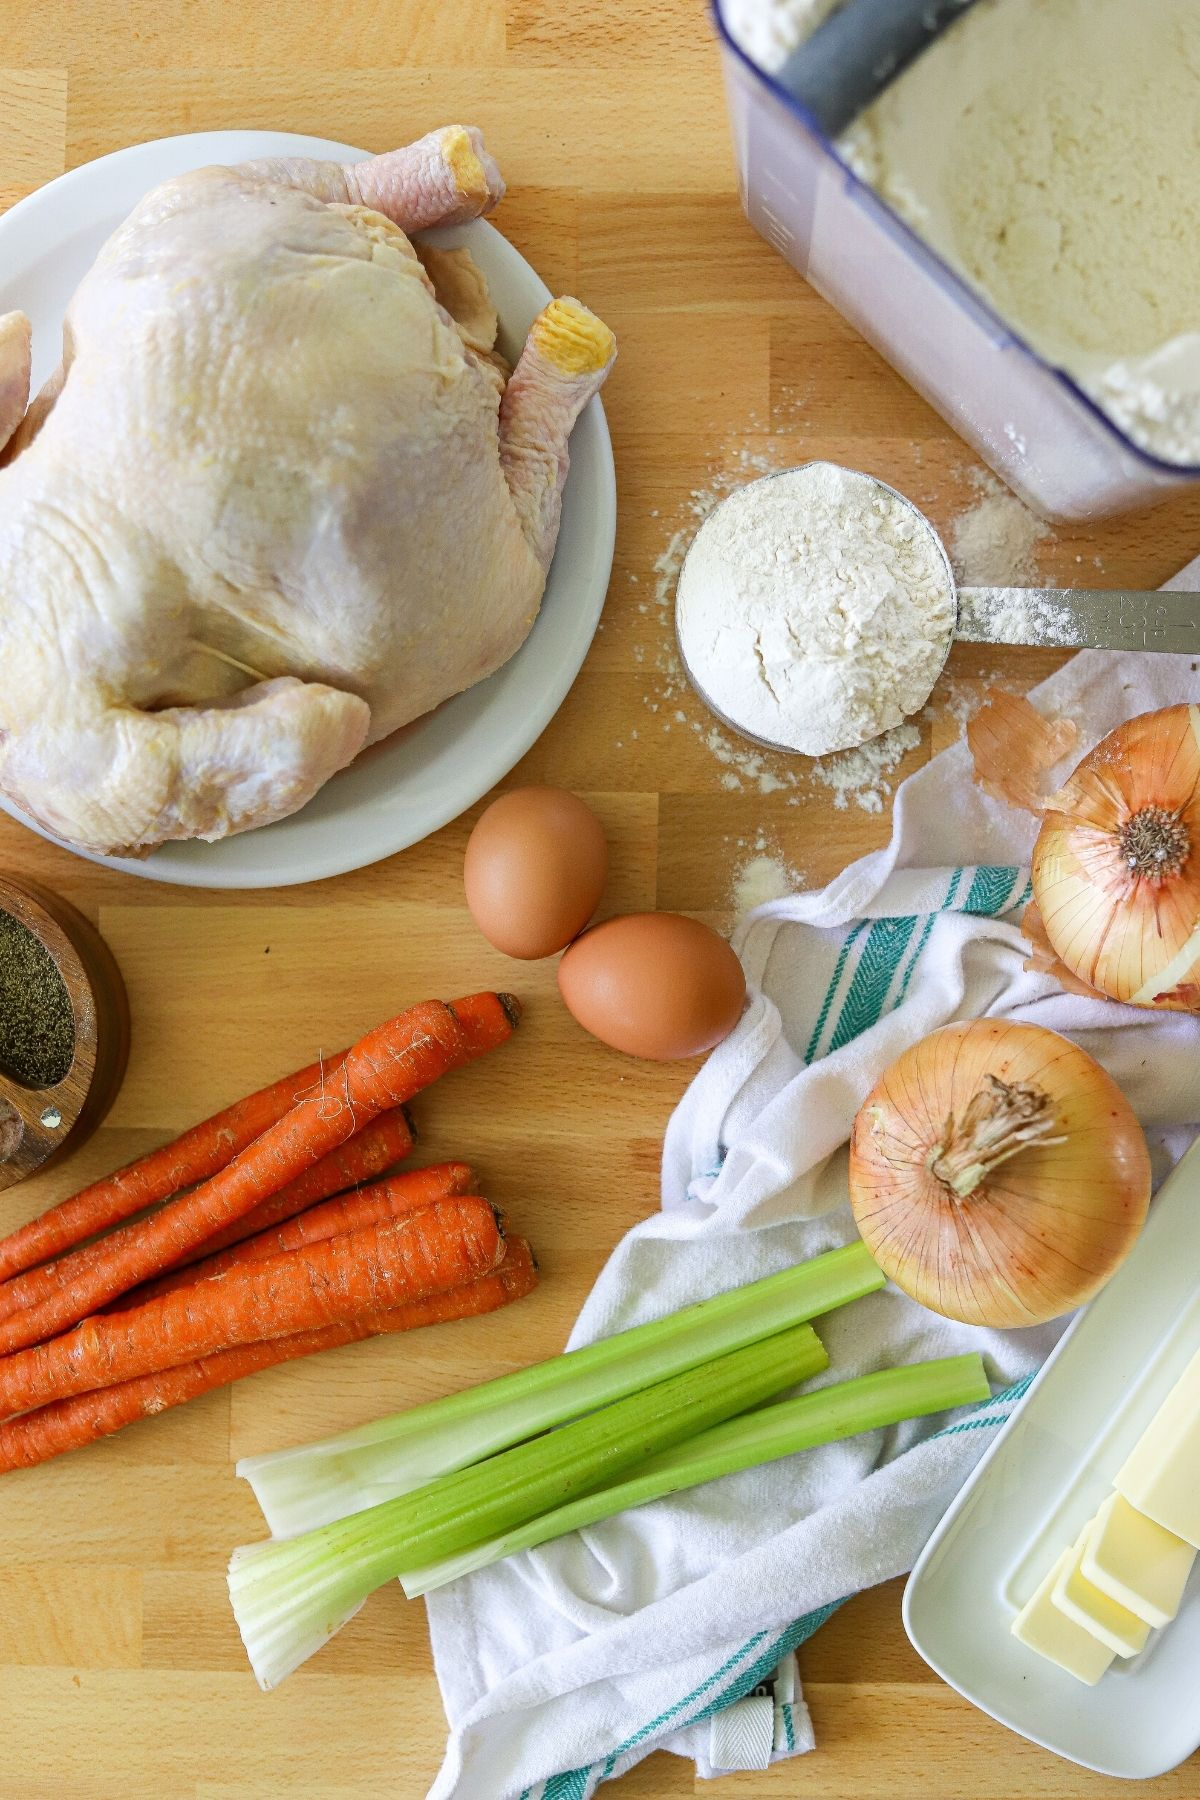 A butcher block filled with ingredients for chicken and dumplings including a whole chicken, flour, onions, carrots, celery, eggs, butter, and salt and pepper.